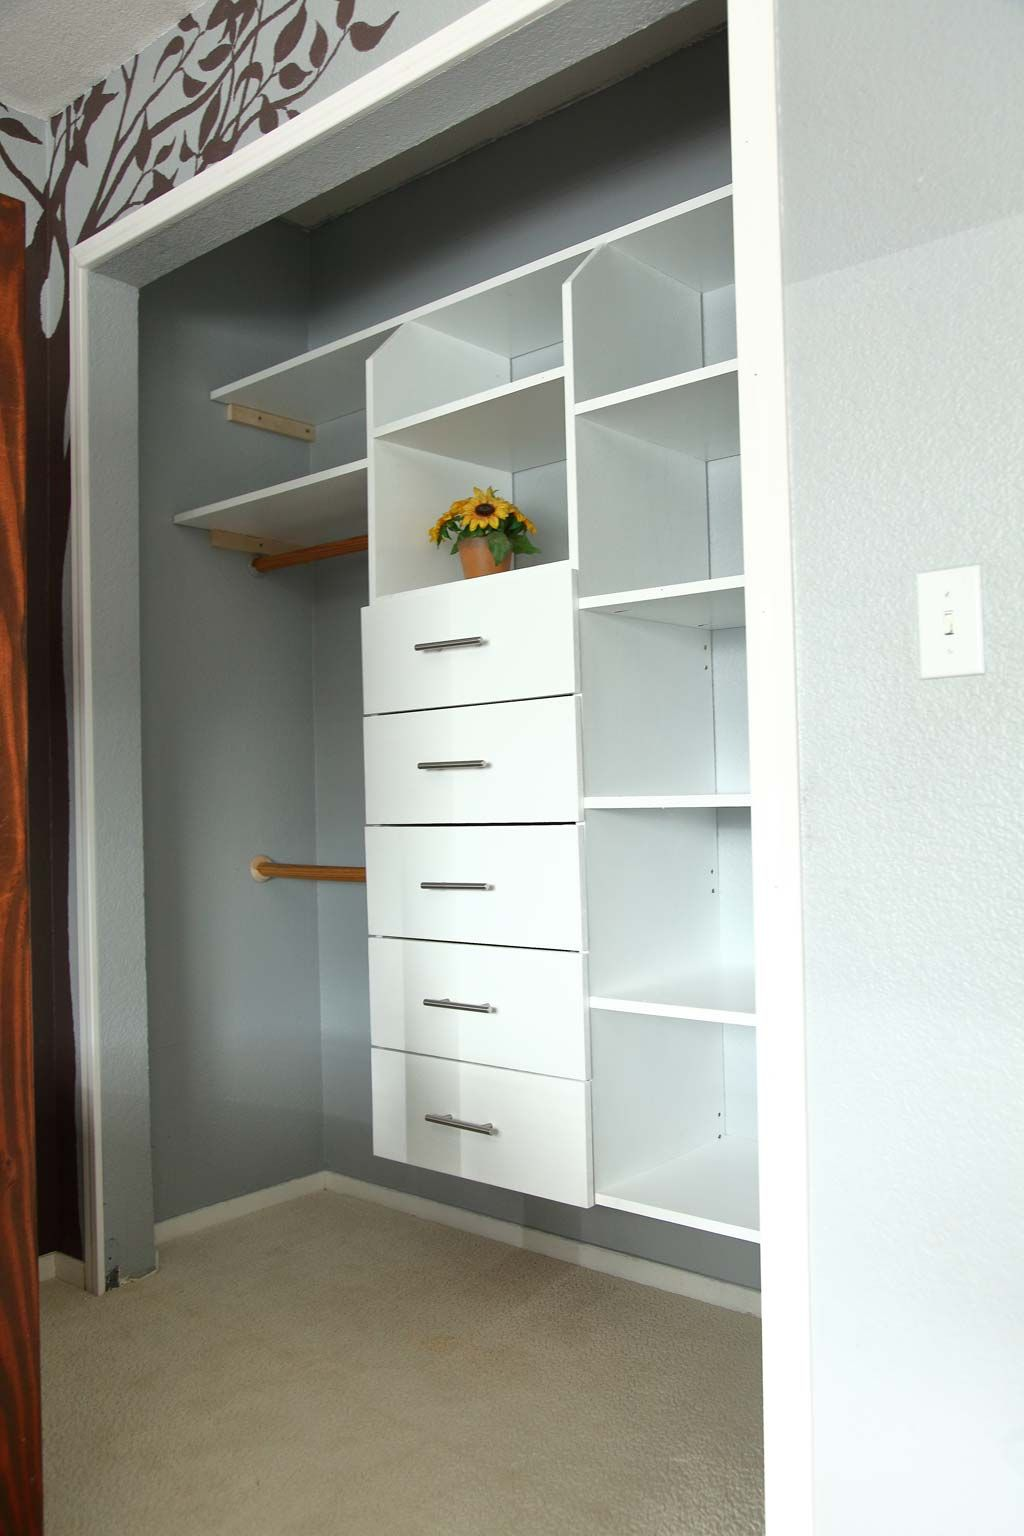 I Made This Closet Organizer Because This Closet Was A Mess My Younger Son Could Not Reach To Closet Organizer With Drawers Closet Organization Closet Drawers